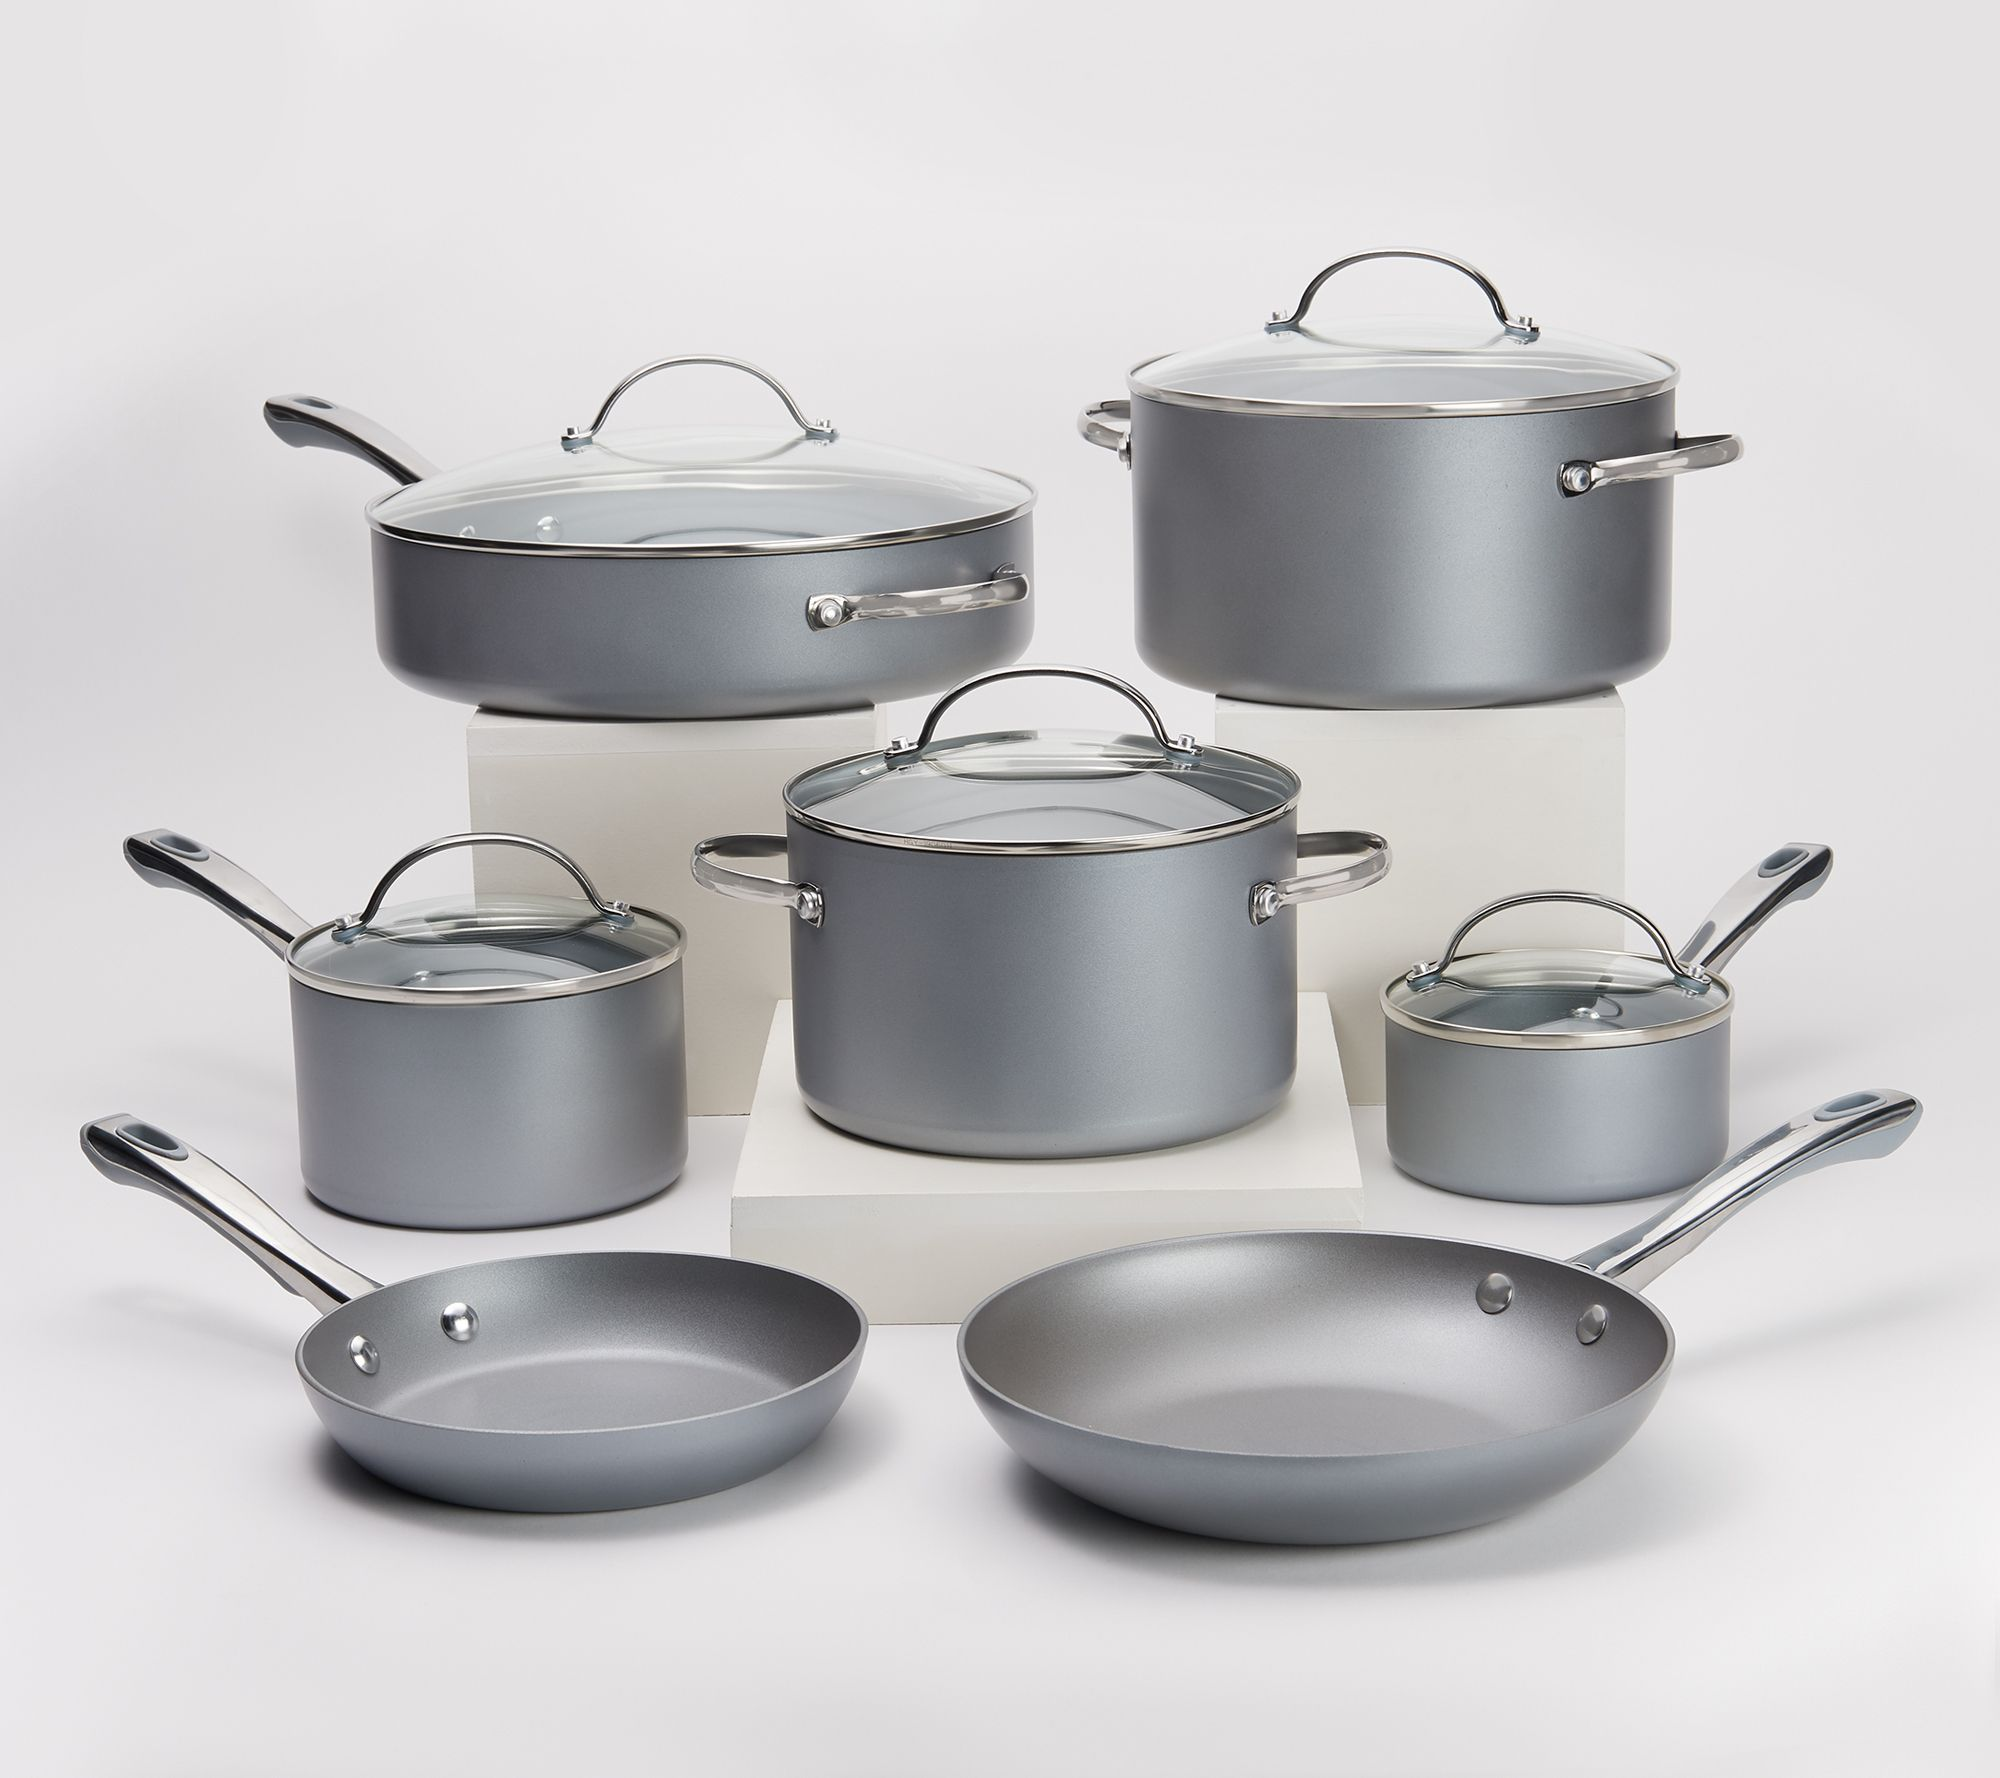 12 Piece Chroma Glide Cookware Set